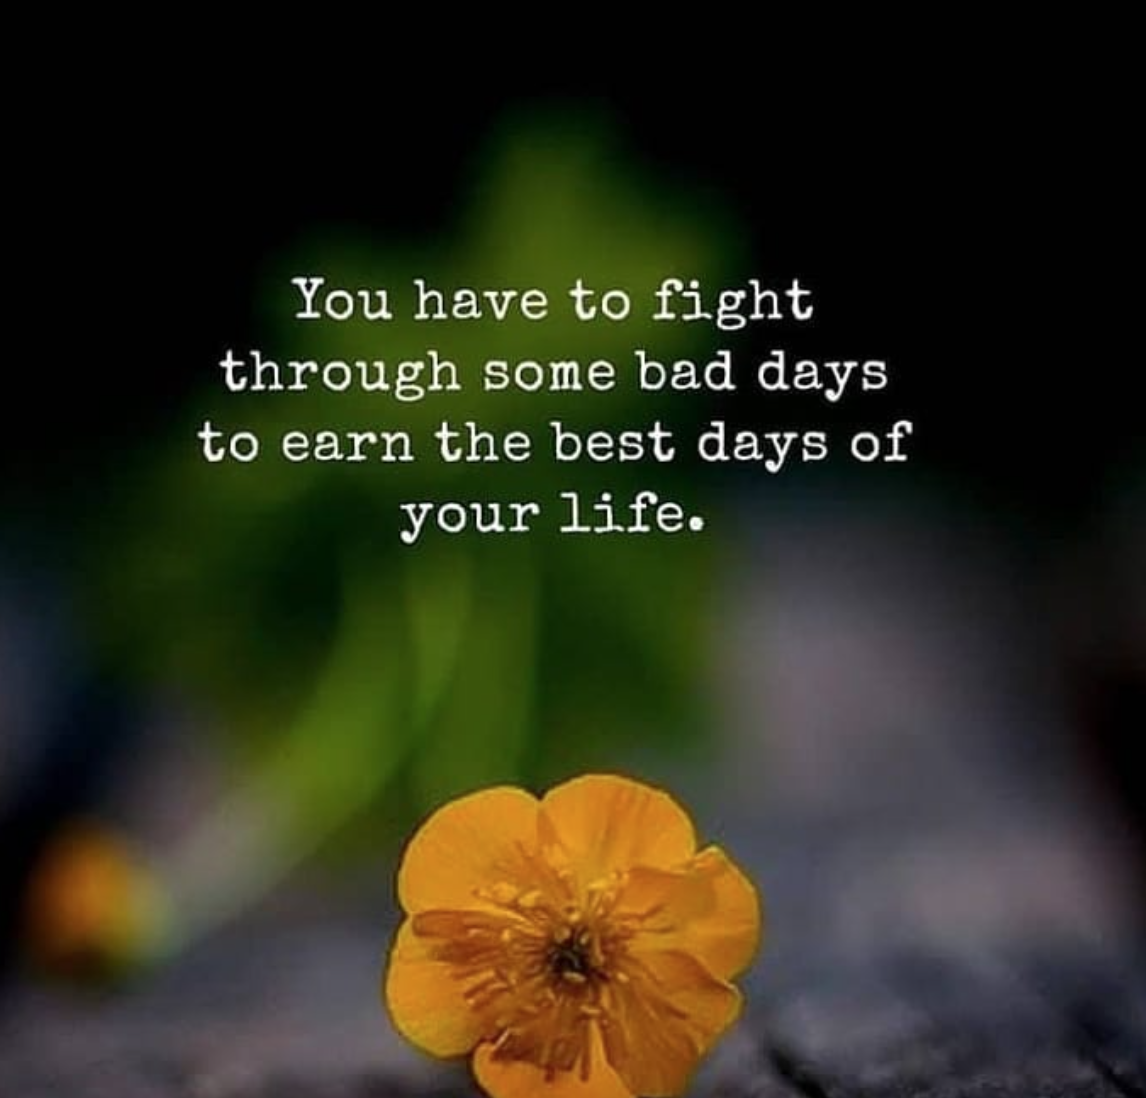 You have to fight through some bad days to earn the best days of your life. https://inspirational.ly